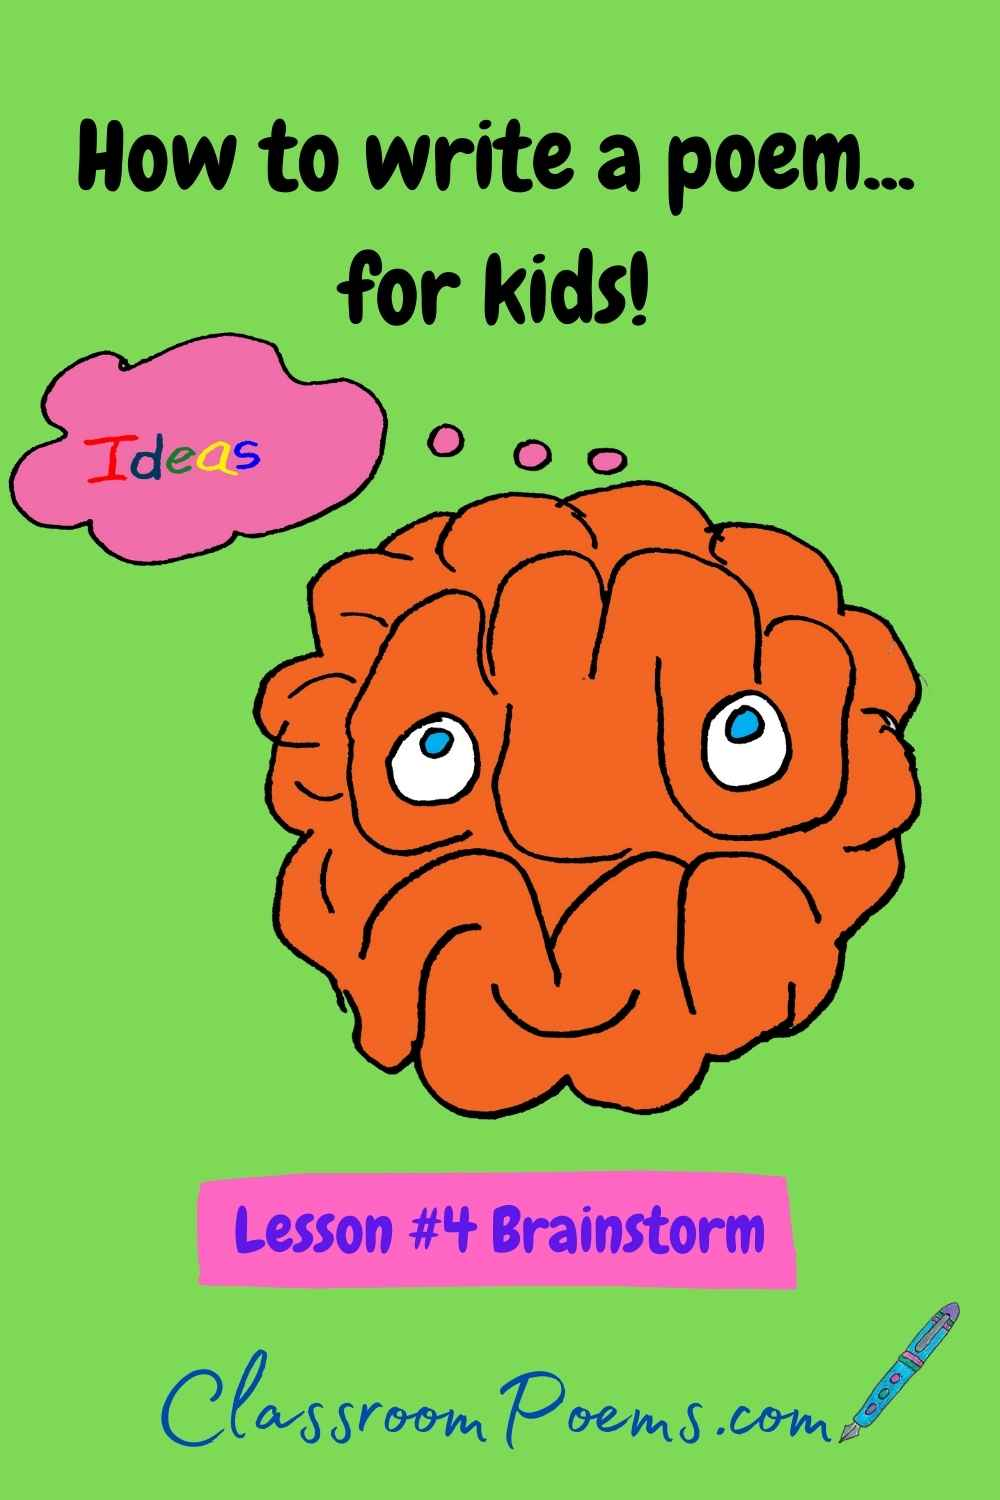 How to teach poetry to kids. Brainstorm.